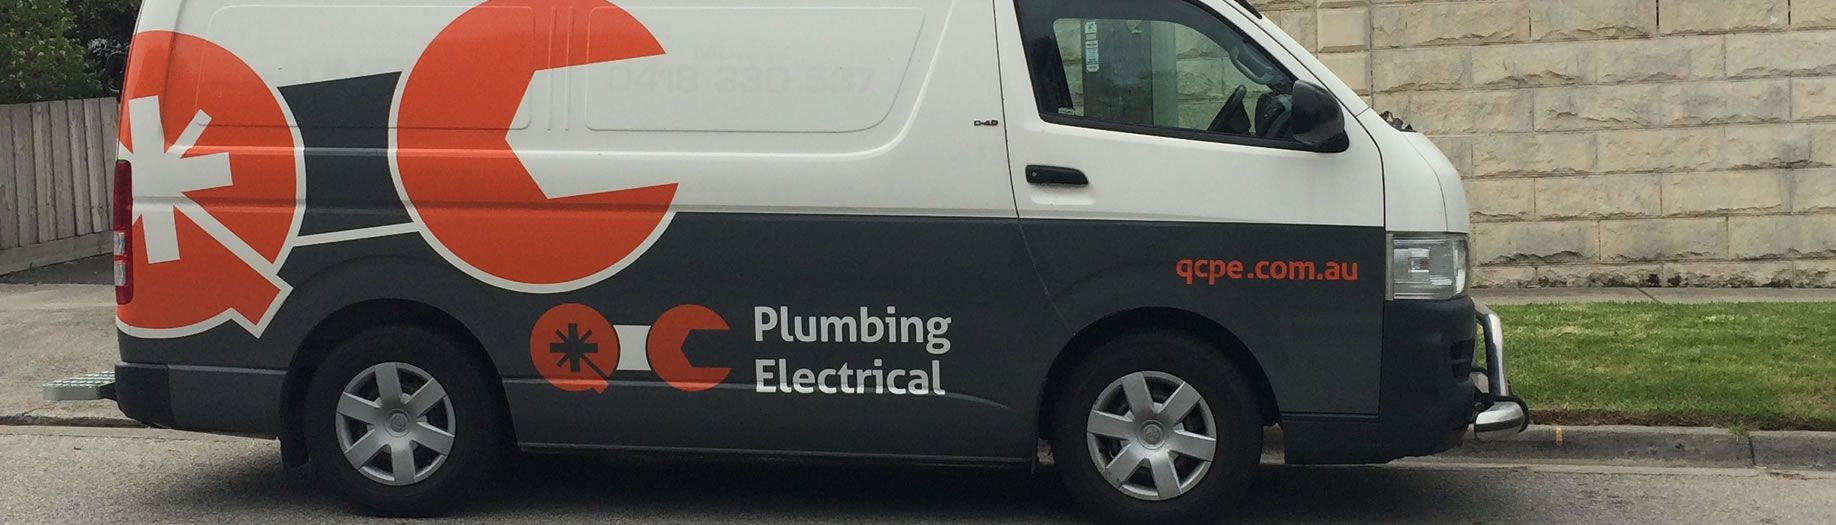 QC Plumbing and Electrical Van